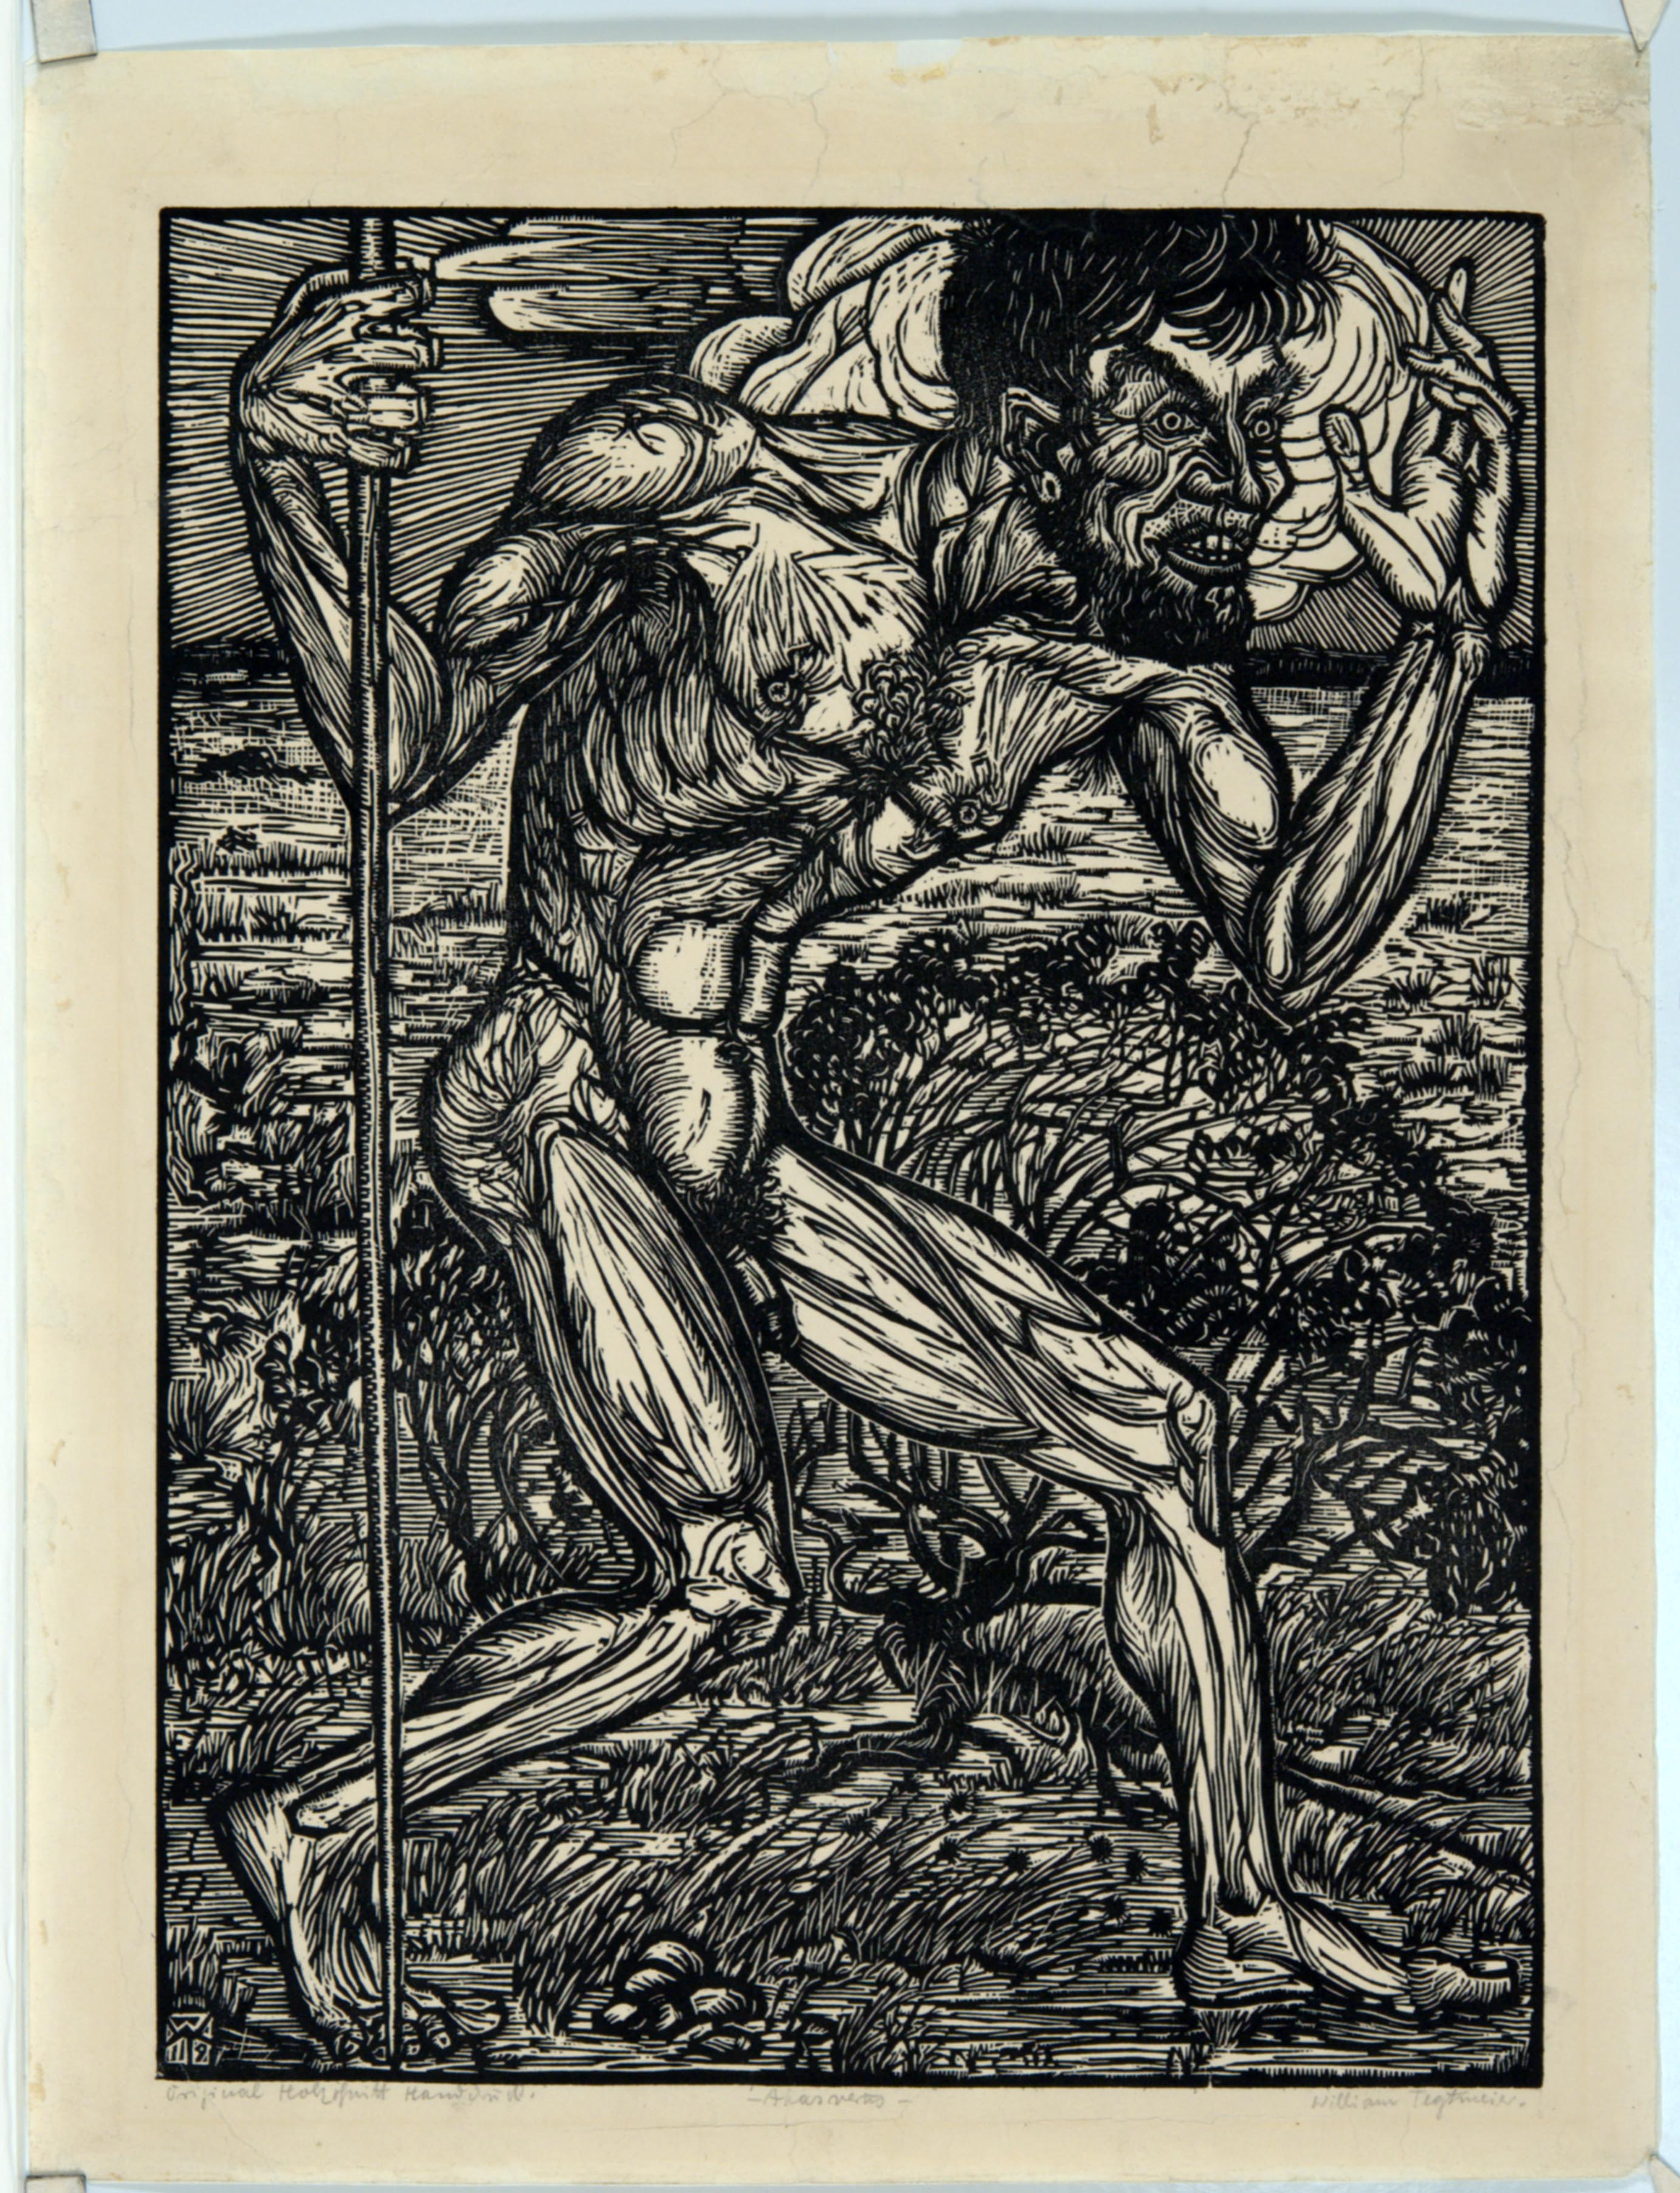 William Tegtmeier, Ahasuerus, 1895-1968